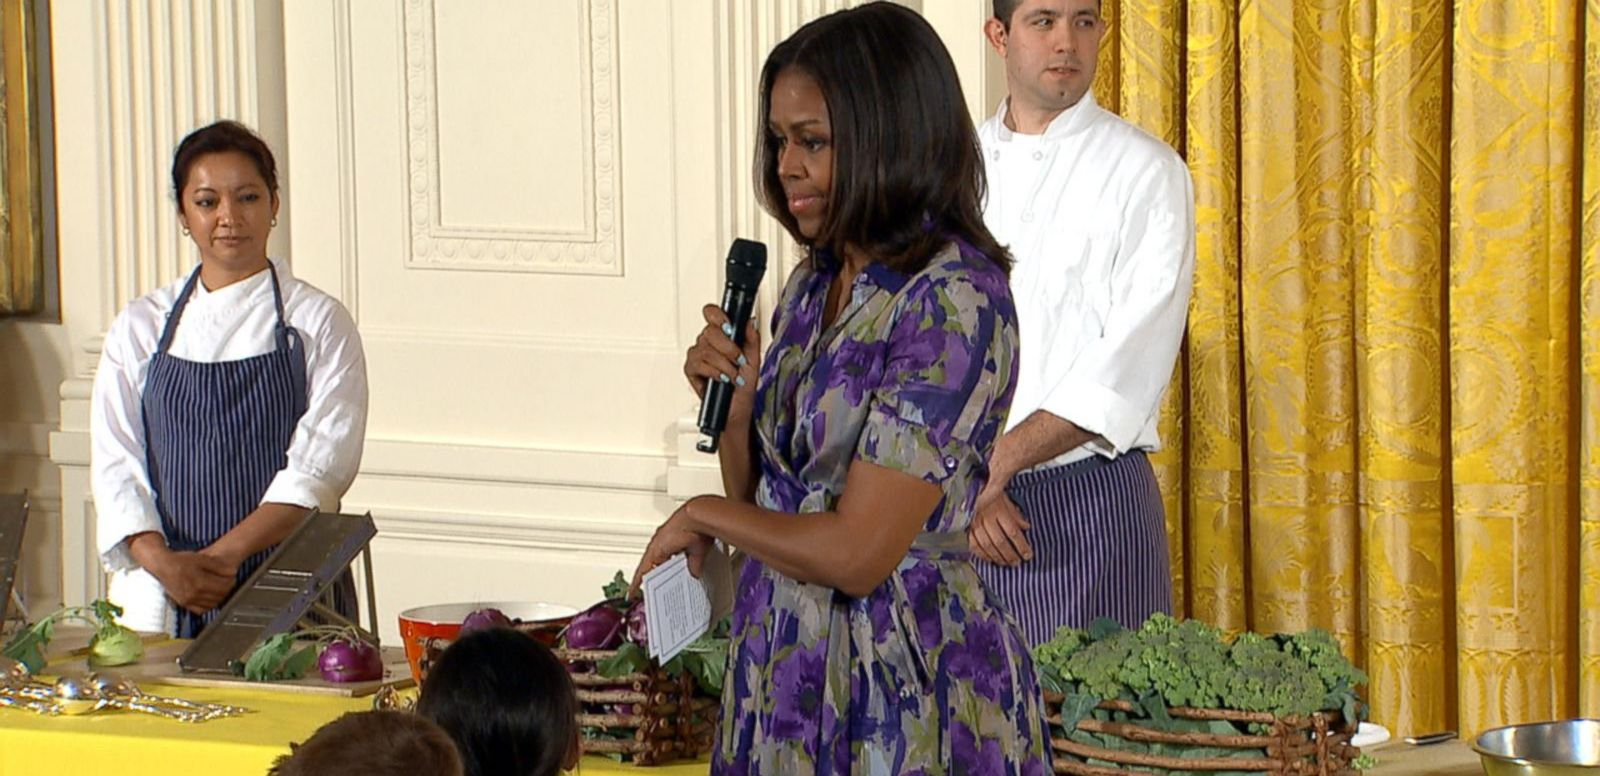 VIDEO: White House Garden Harvest: Michelle Obama Tells Kids To Eat Their Veggies